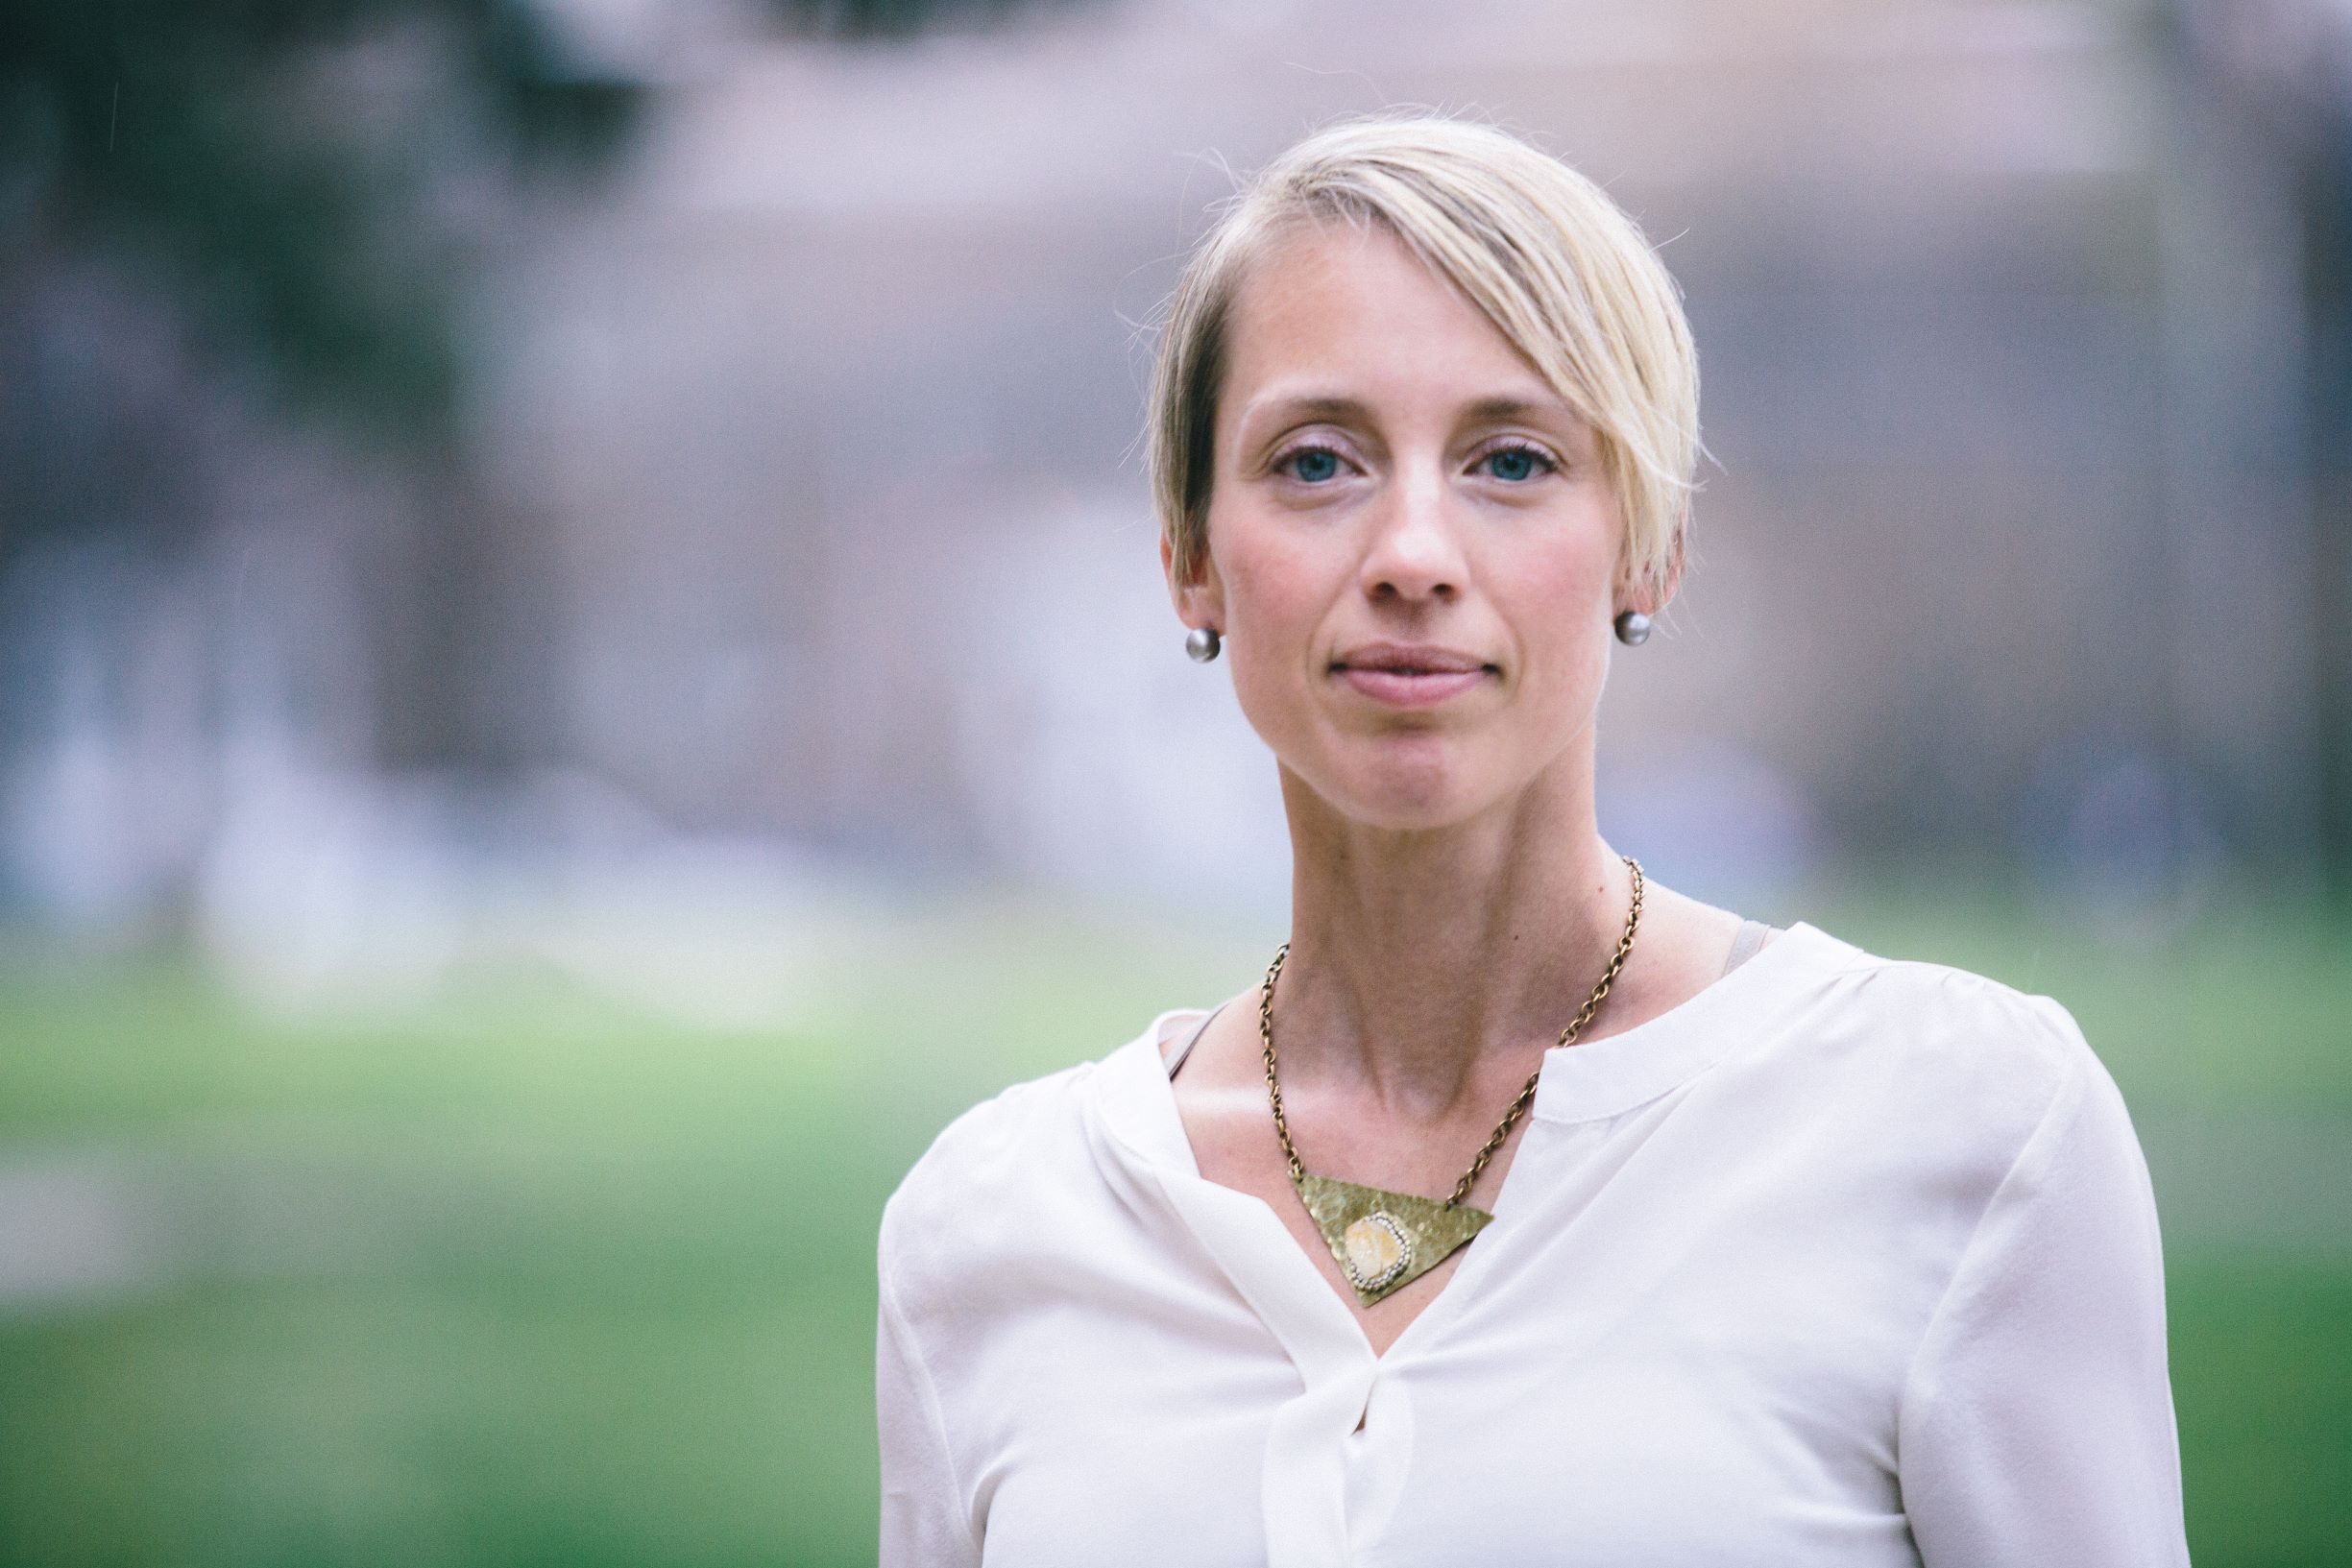 Nicole Hagerman Miller. Image courtesy of Biomimicry 3.8